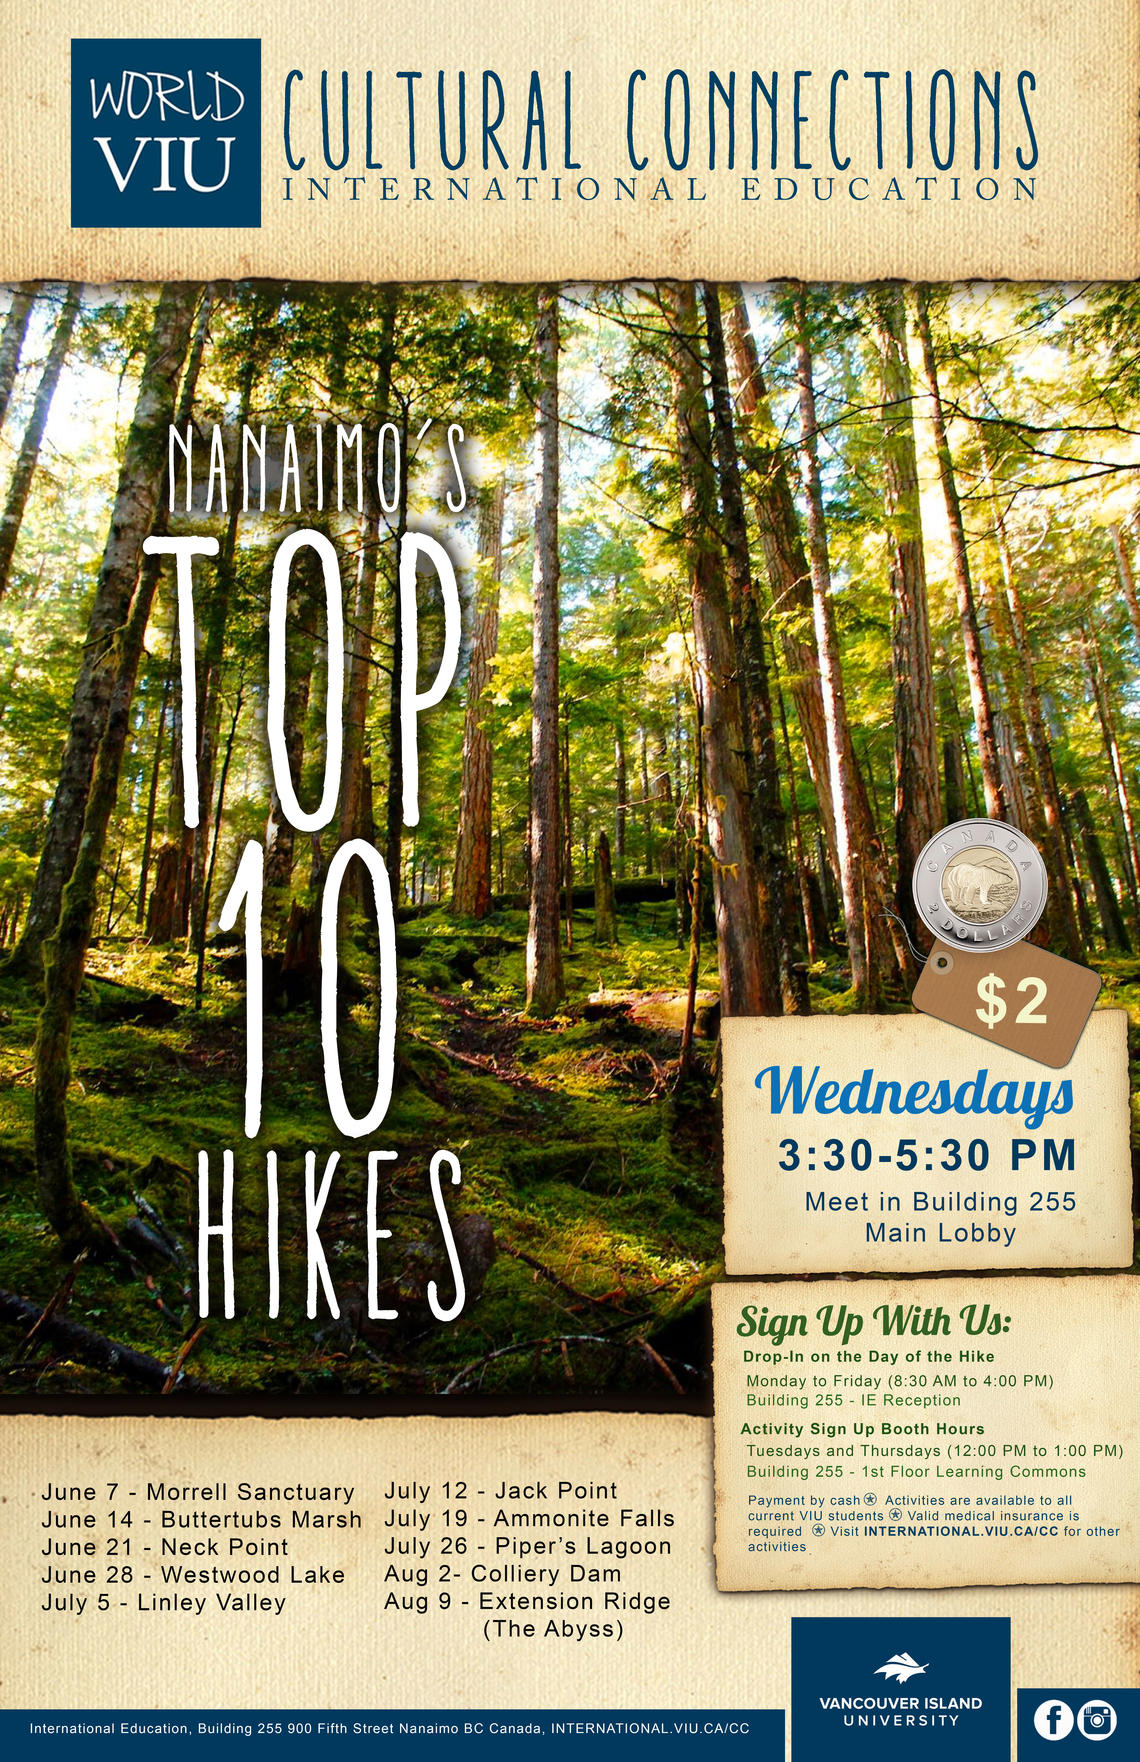 Nanaimo's Top Ten Hikes, Top Ten, Hiking Nanaimo, VIU, International Students, Activities, Student Life, Vancouver Island Univeristy